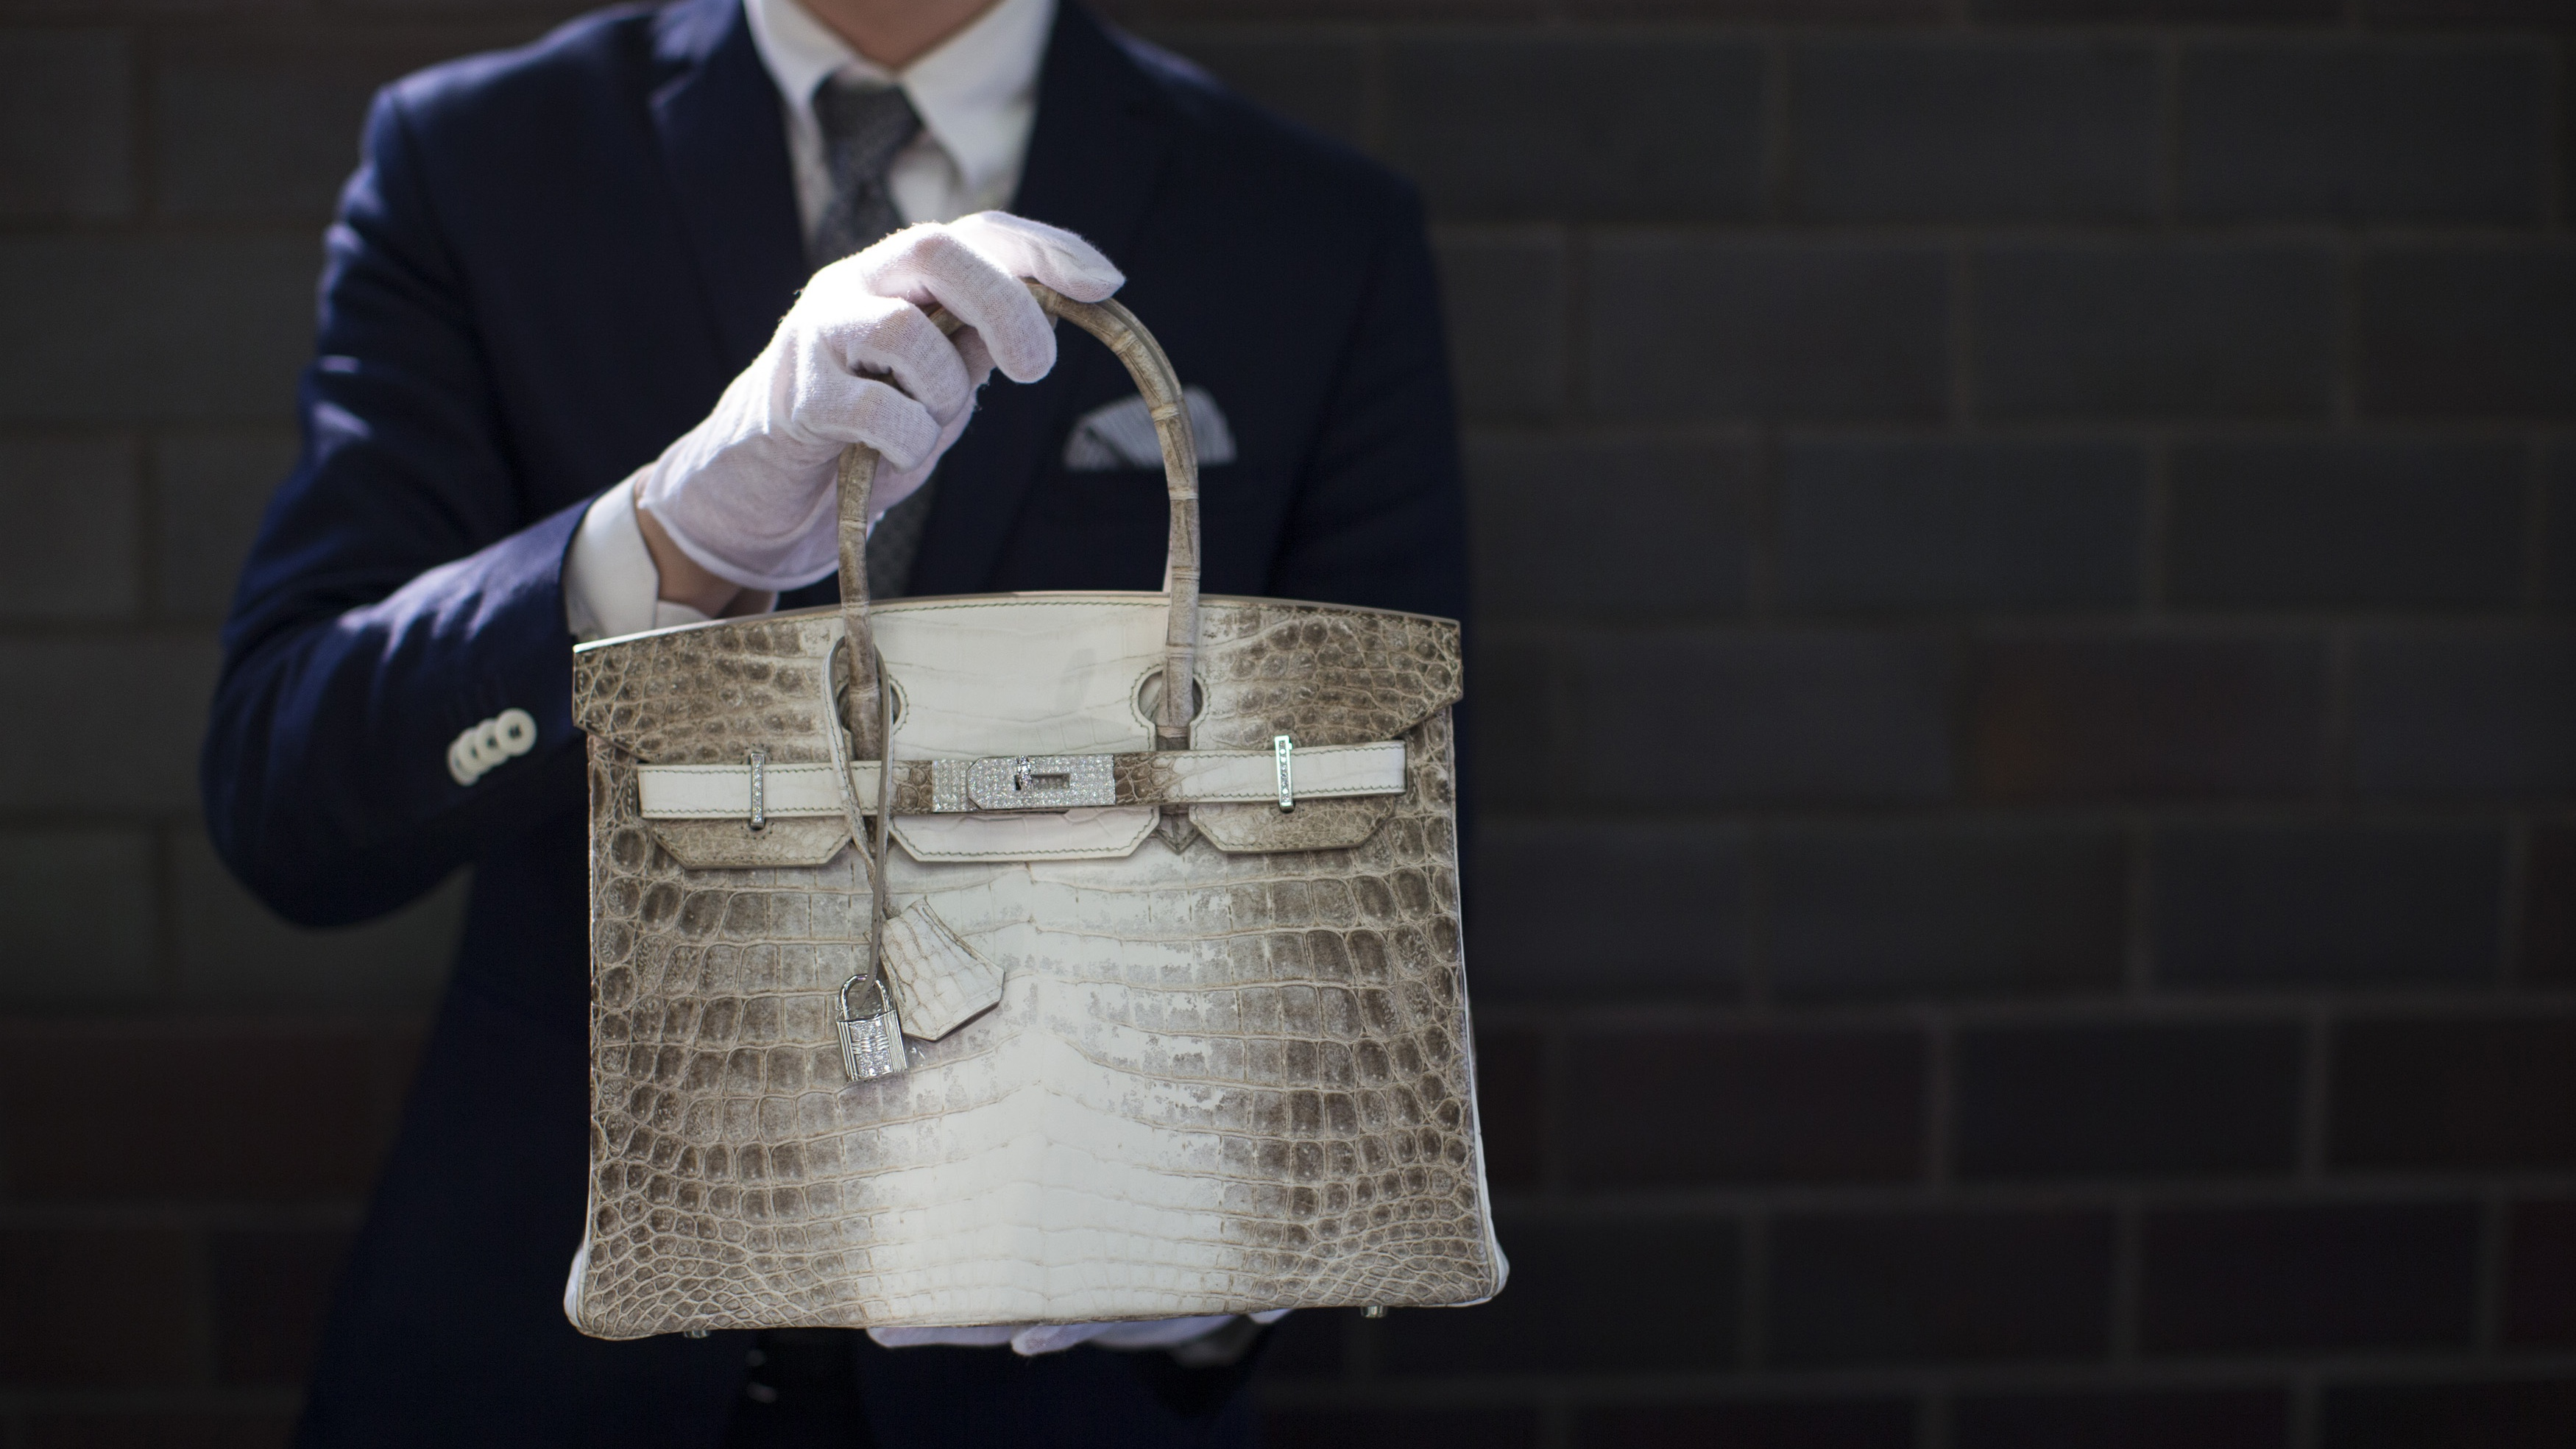 An employee holds an Hermes diamond and Himalayan Nilo Crocodile Birkin handbag at Heritage Auctions offices in Beverly Hills, California September 22, 2014. The handbag has 242 diamonds with a total of 9.84 carats.